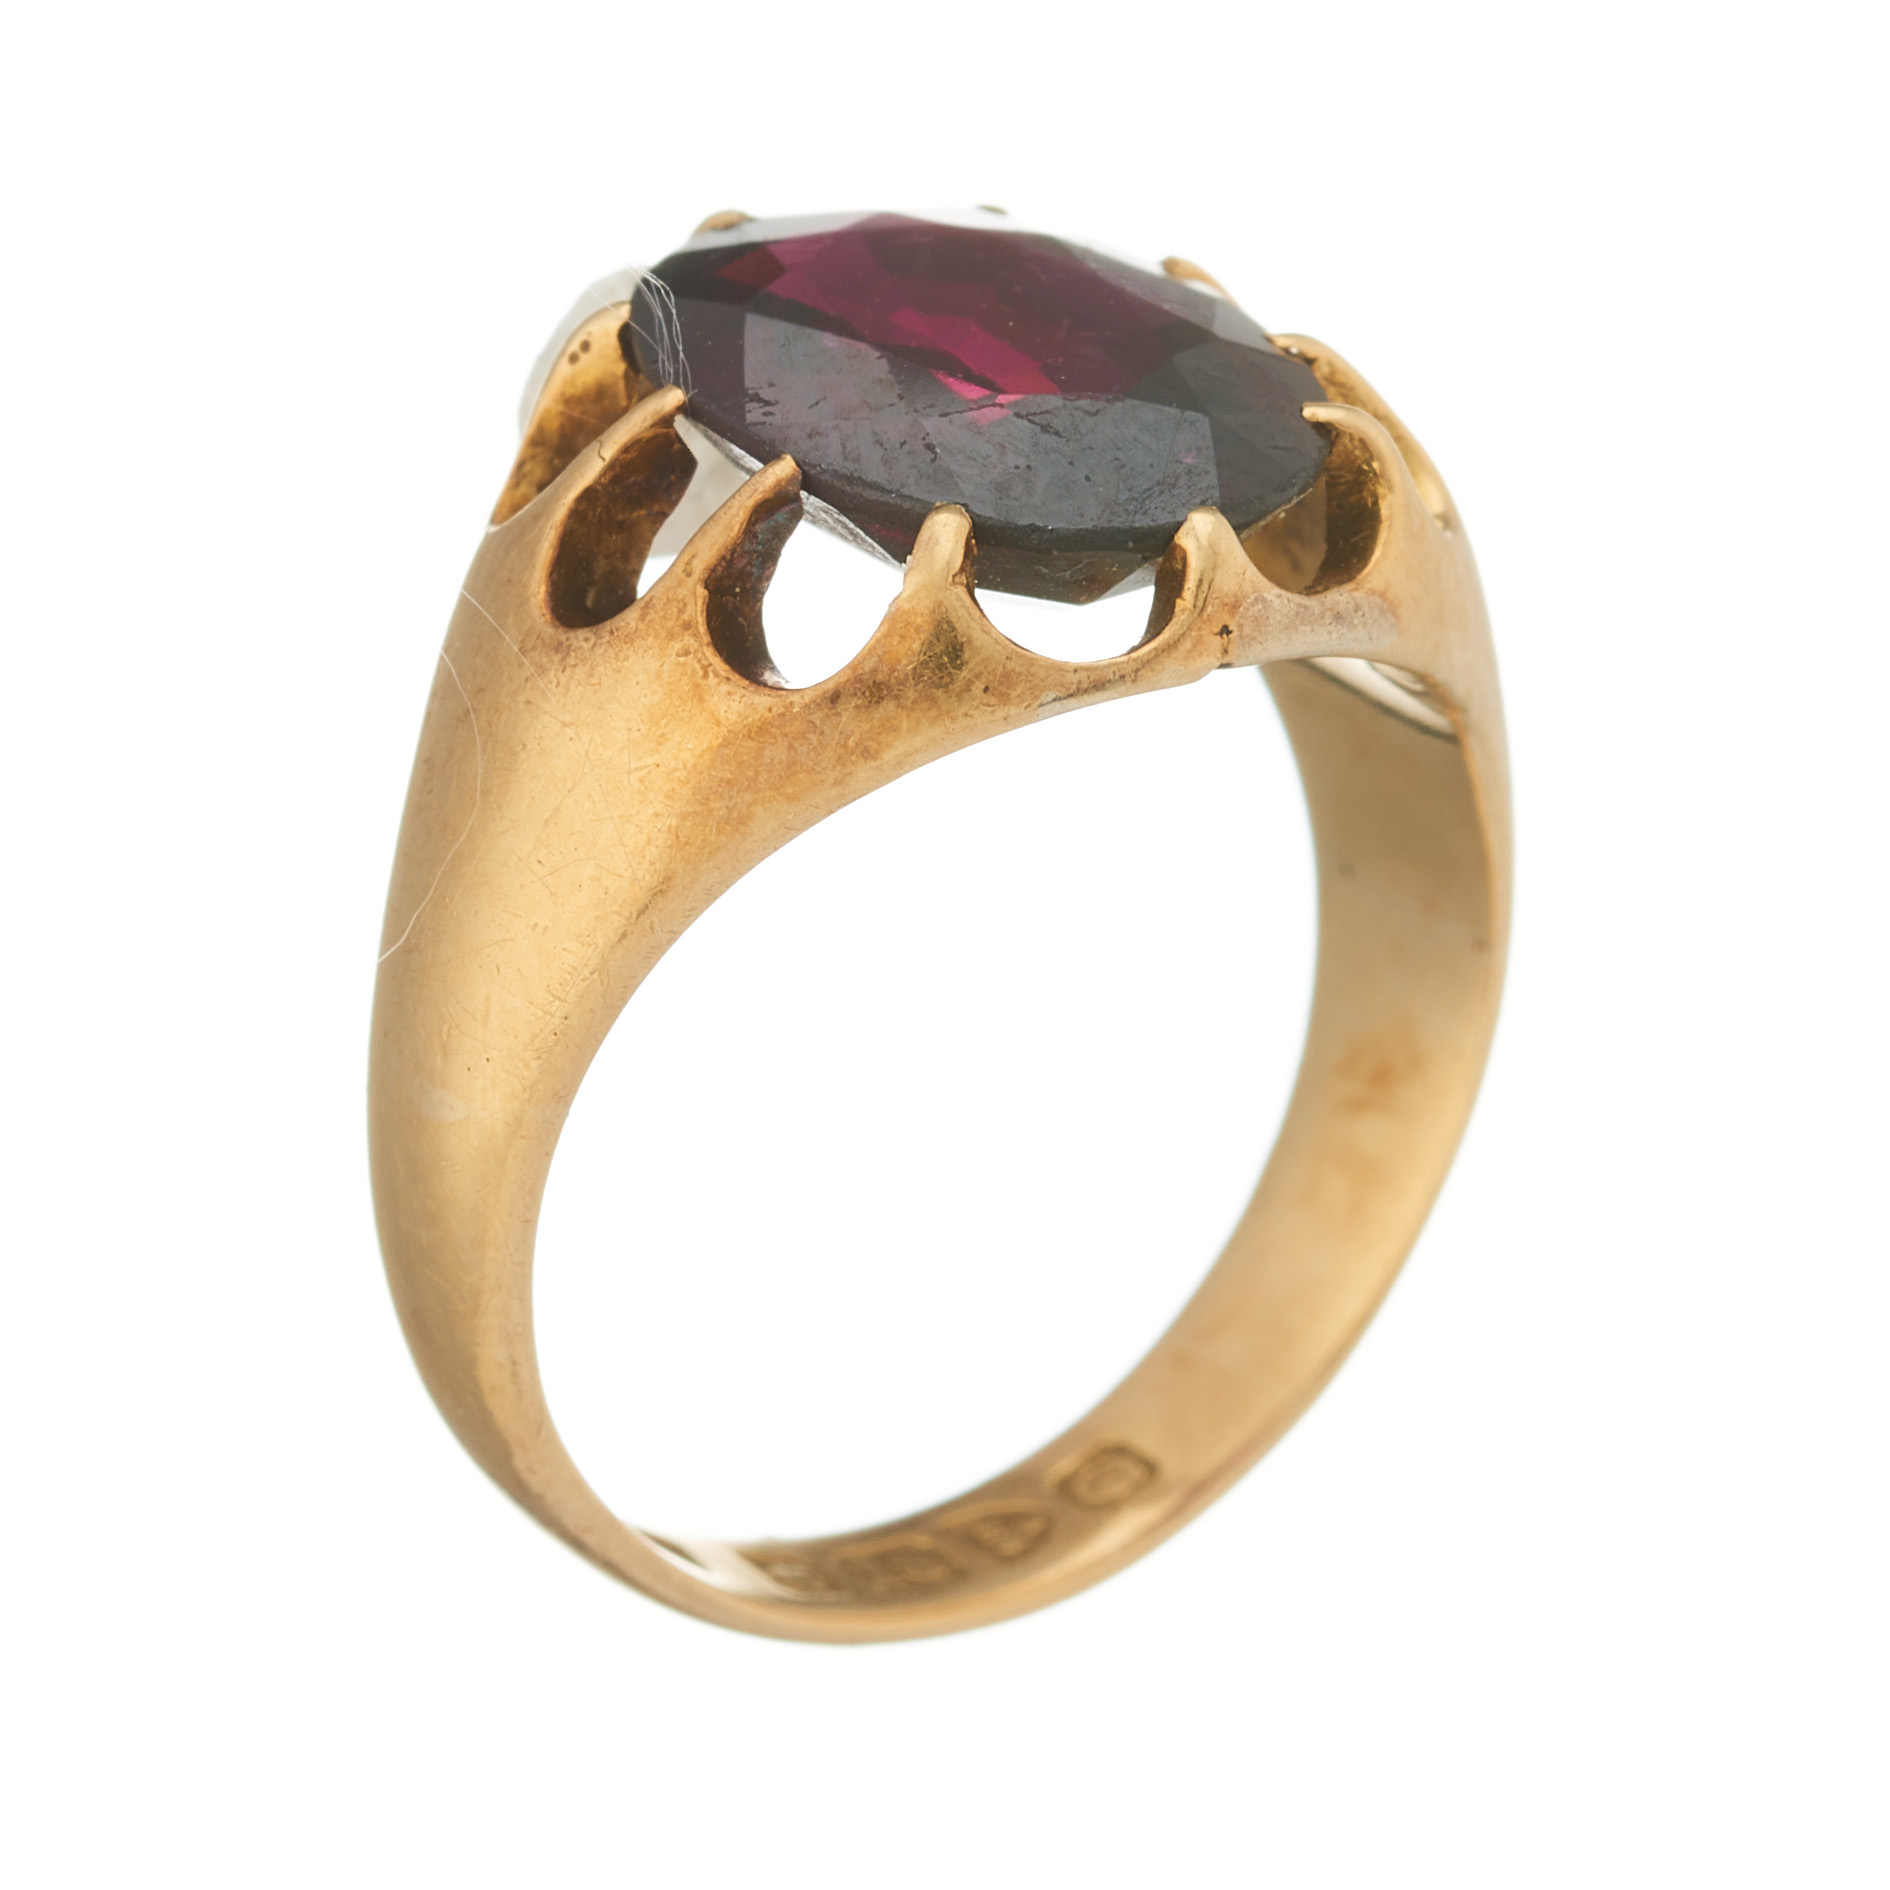 An early 20th century 18ct gold garnet single-stone ring - Image 2 of 2